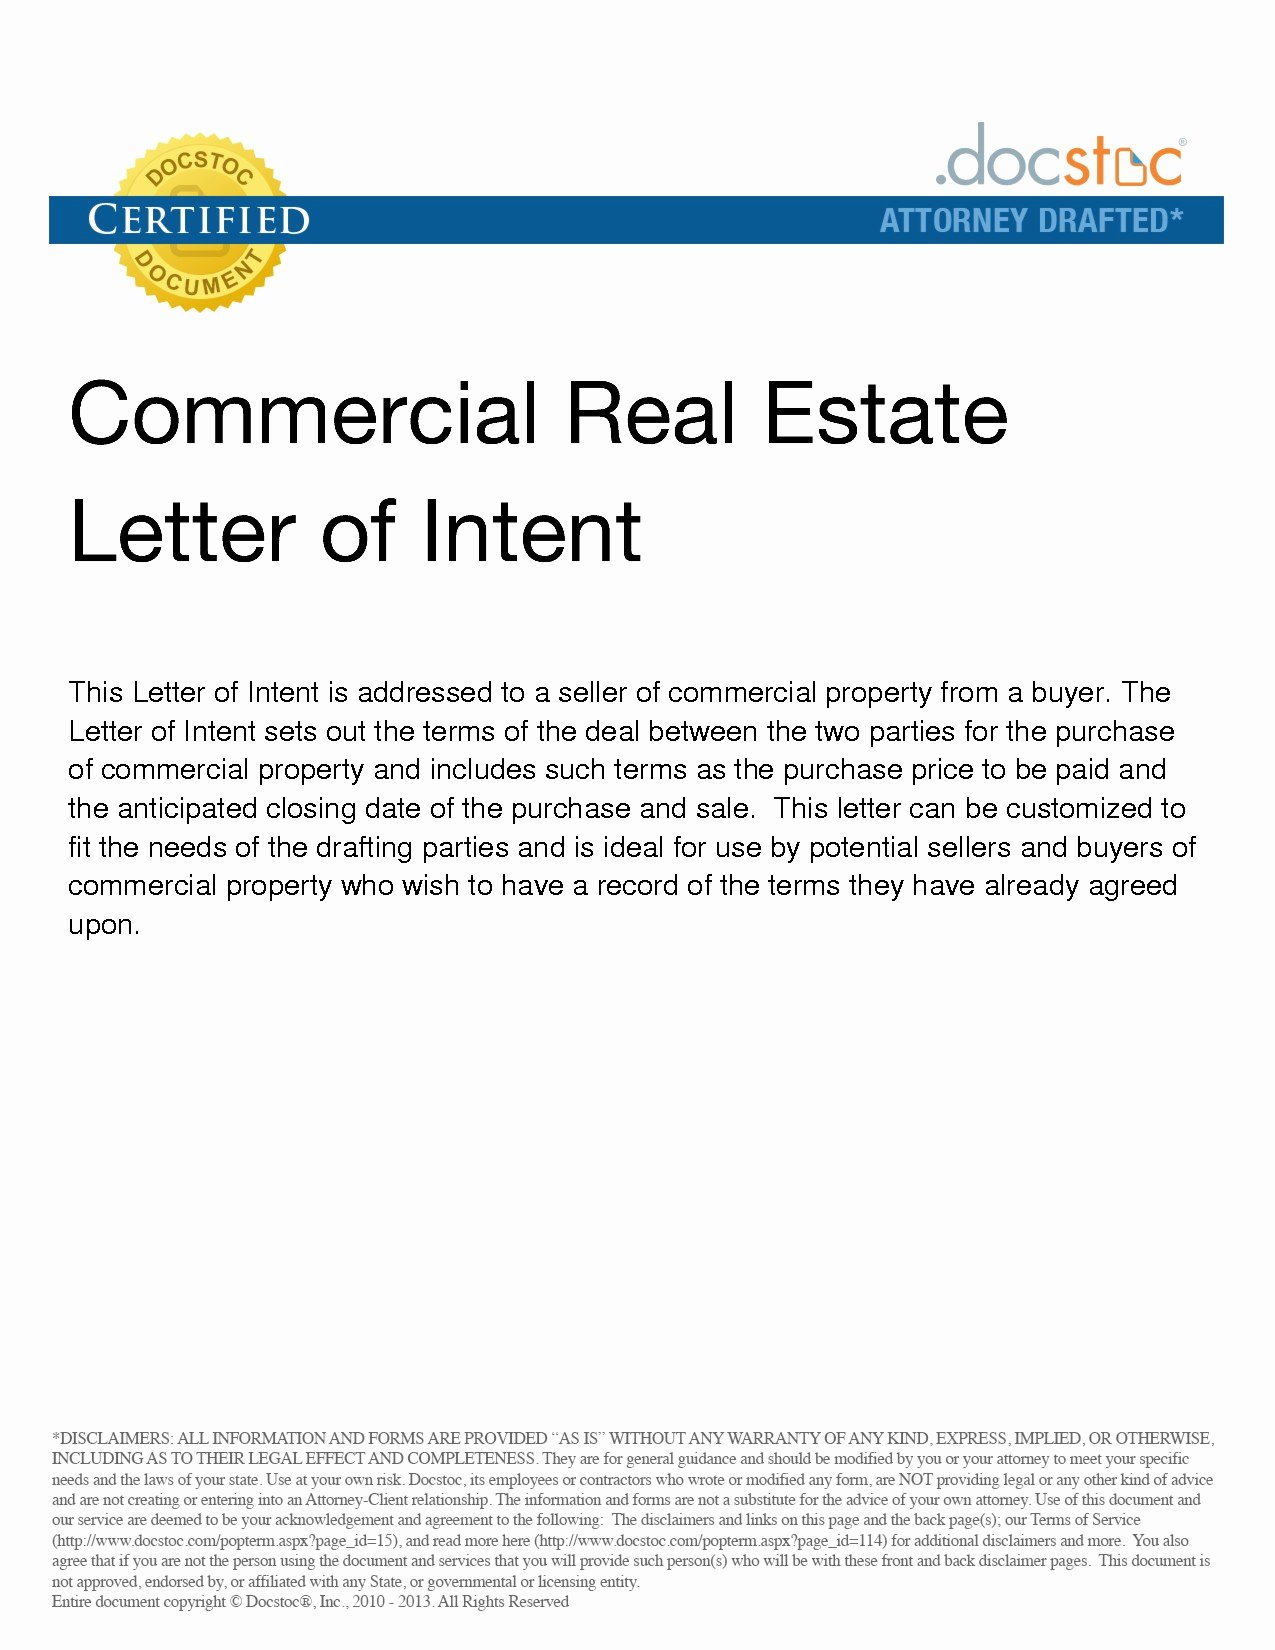 Commercial Real Estate Loi Template Best Of Mercial Real Estate Letter Intent Template Samples